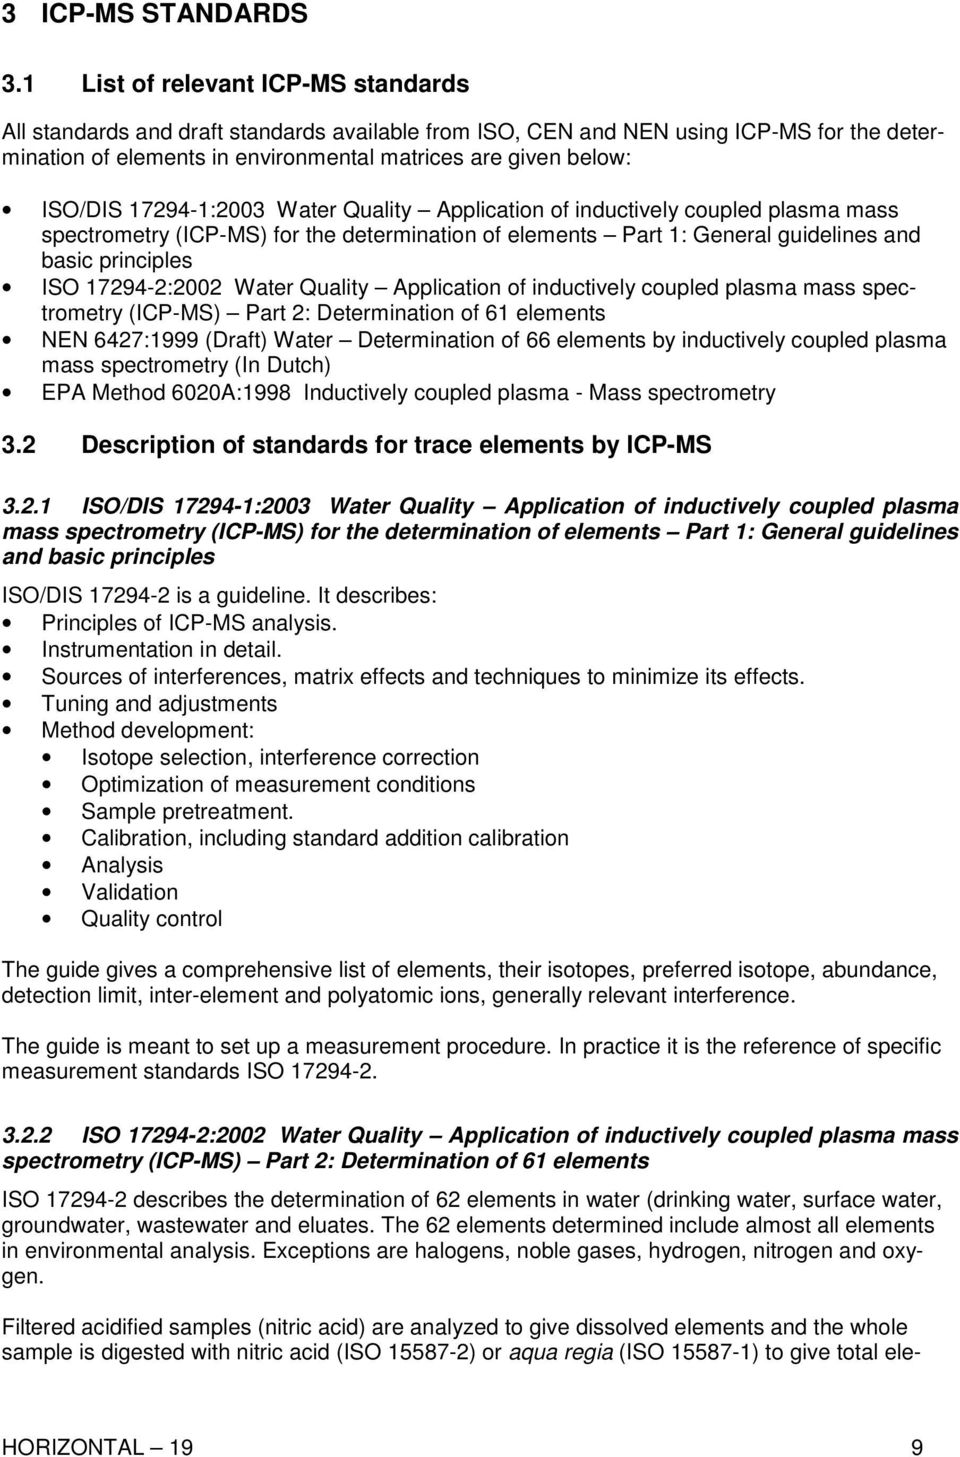 17294-1:2003 Water Quality Application of inductively coupled plasma mass spectrometry (ICP-MS) for the determination of elements Part 1: General guidelines and basic principles ISO 17294-2:2002